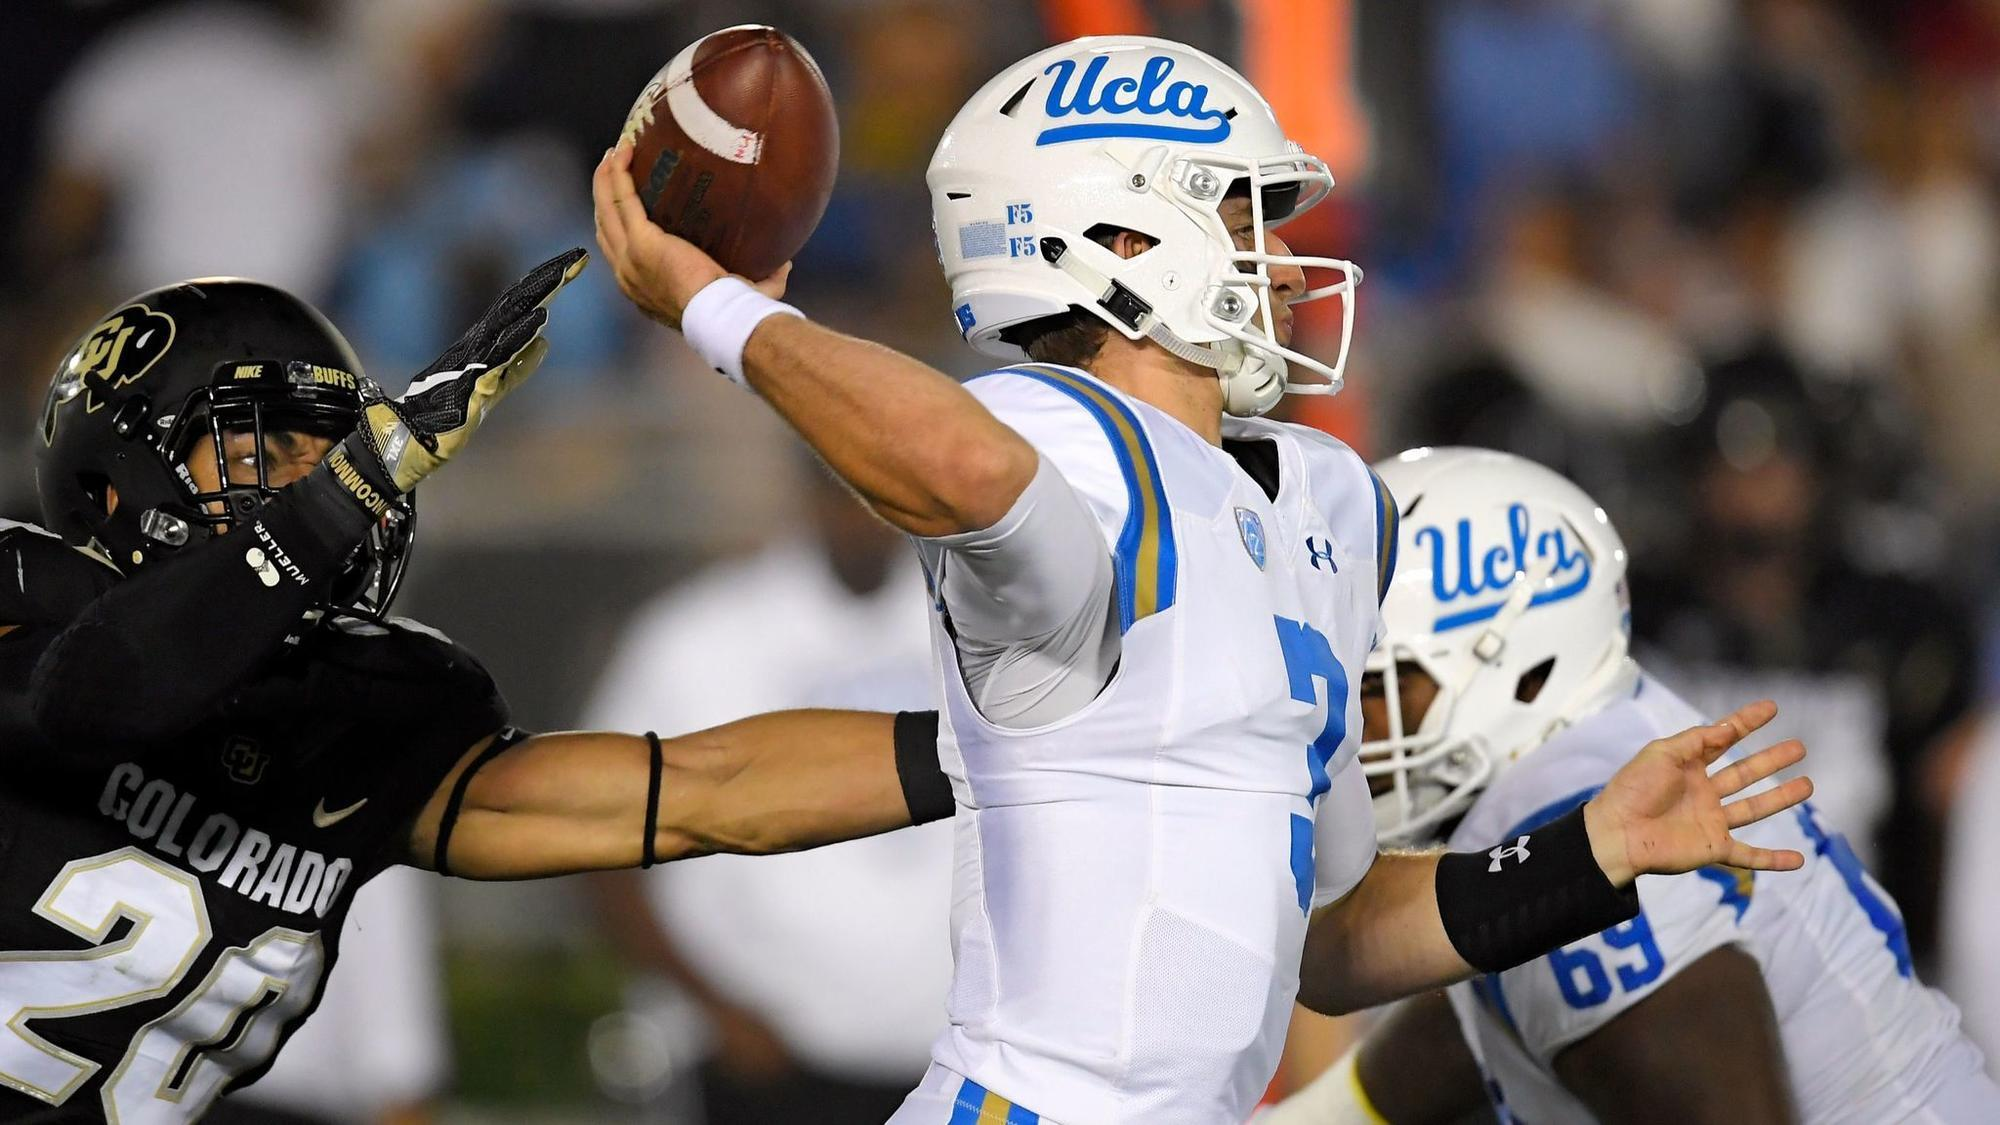 If Browns Target Ucla S Rosen Should He Take The Elway